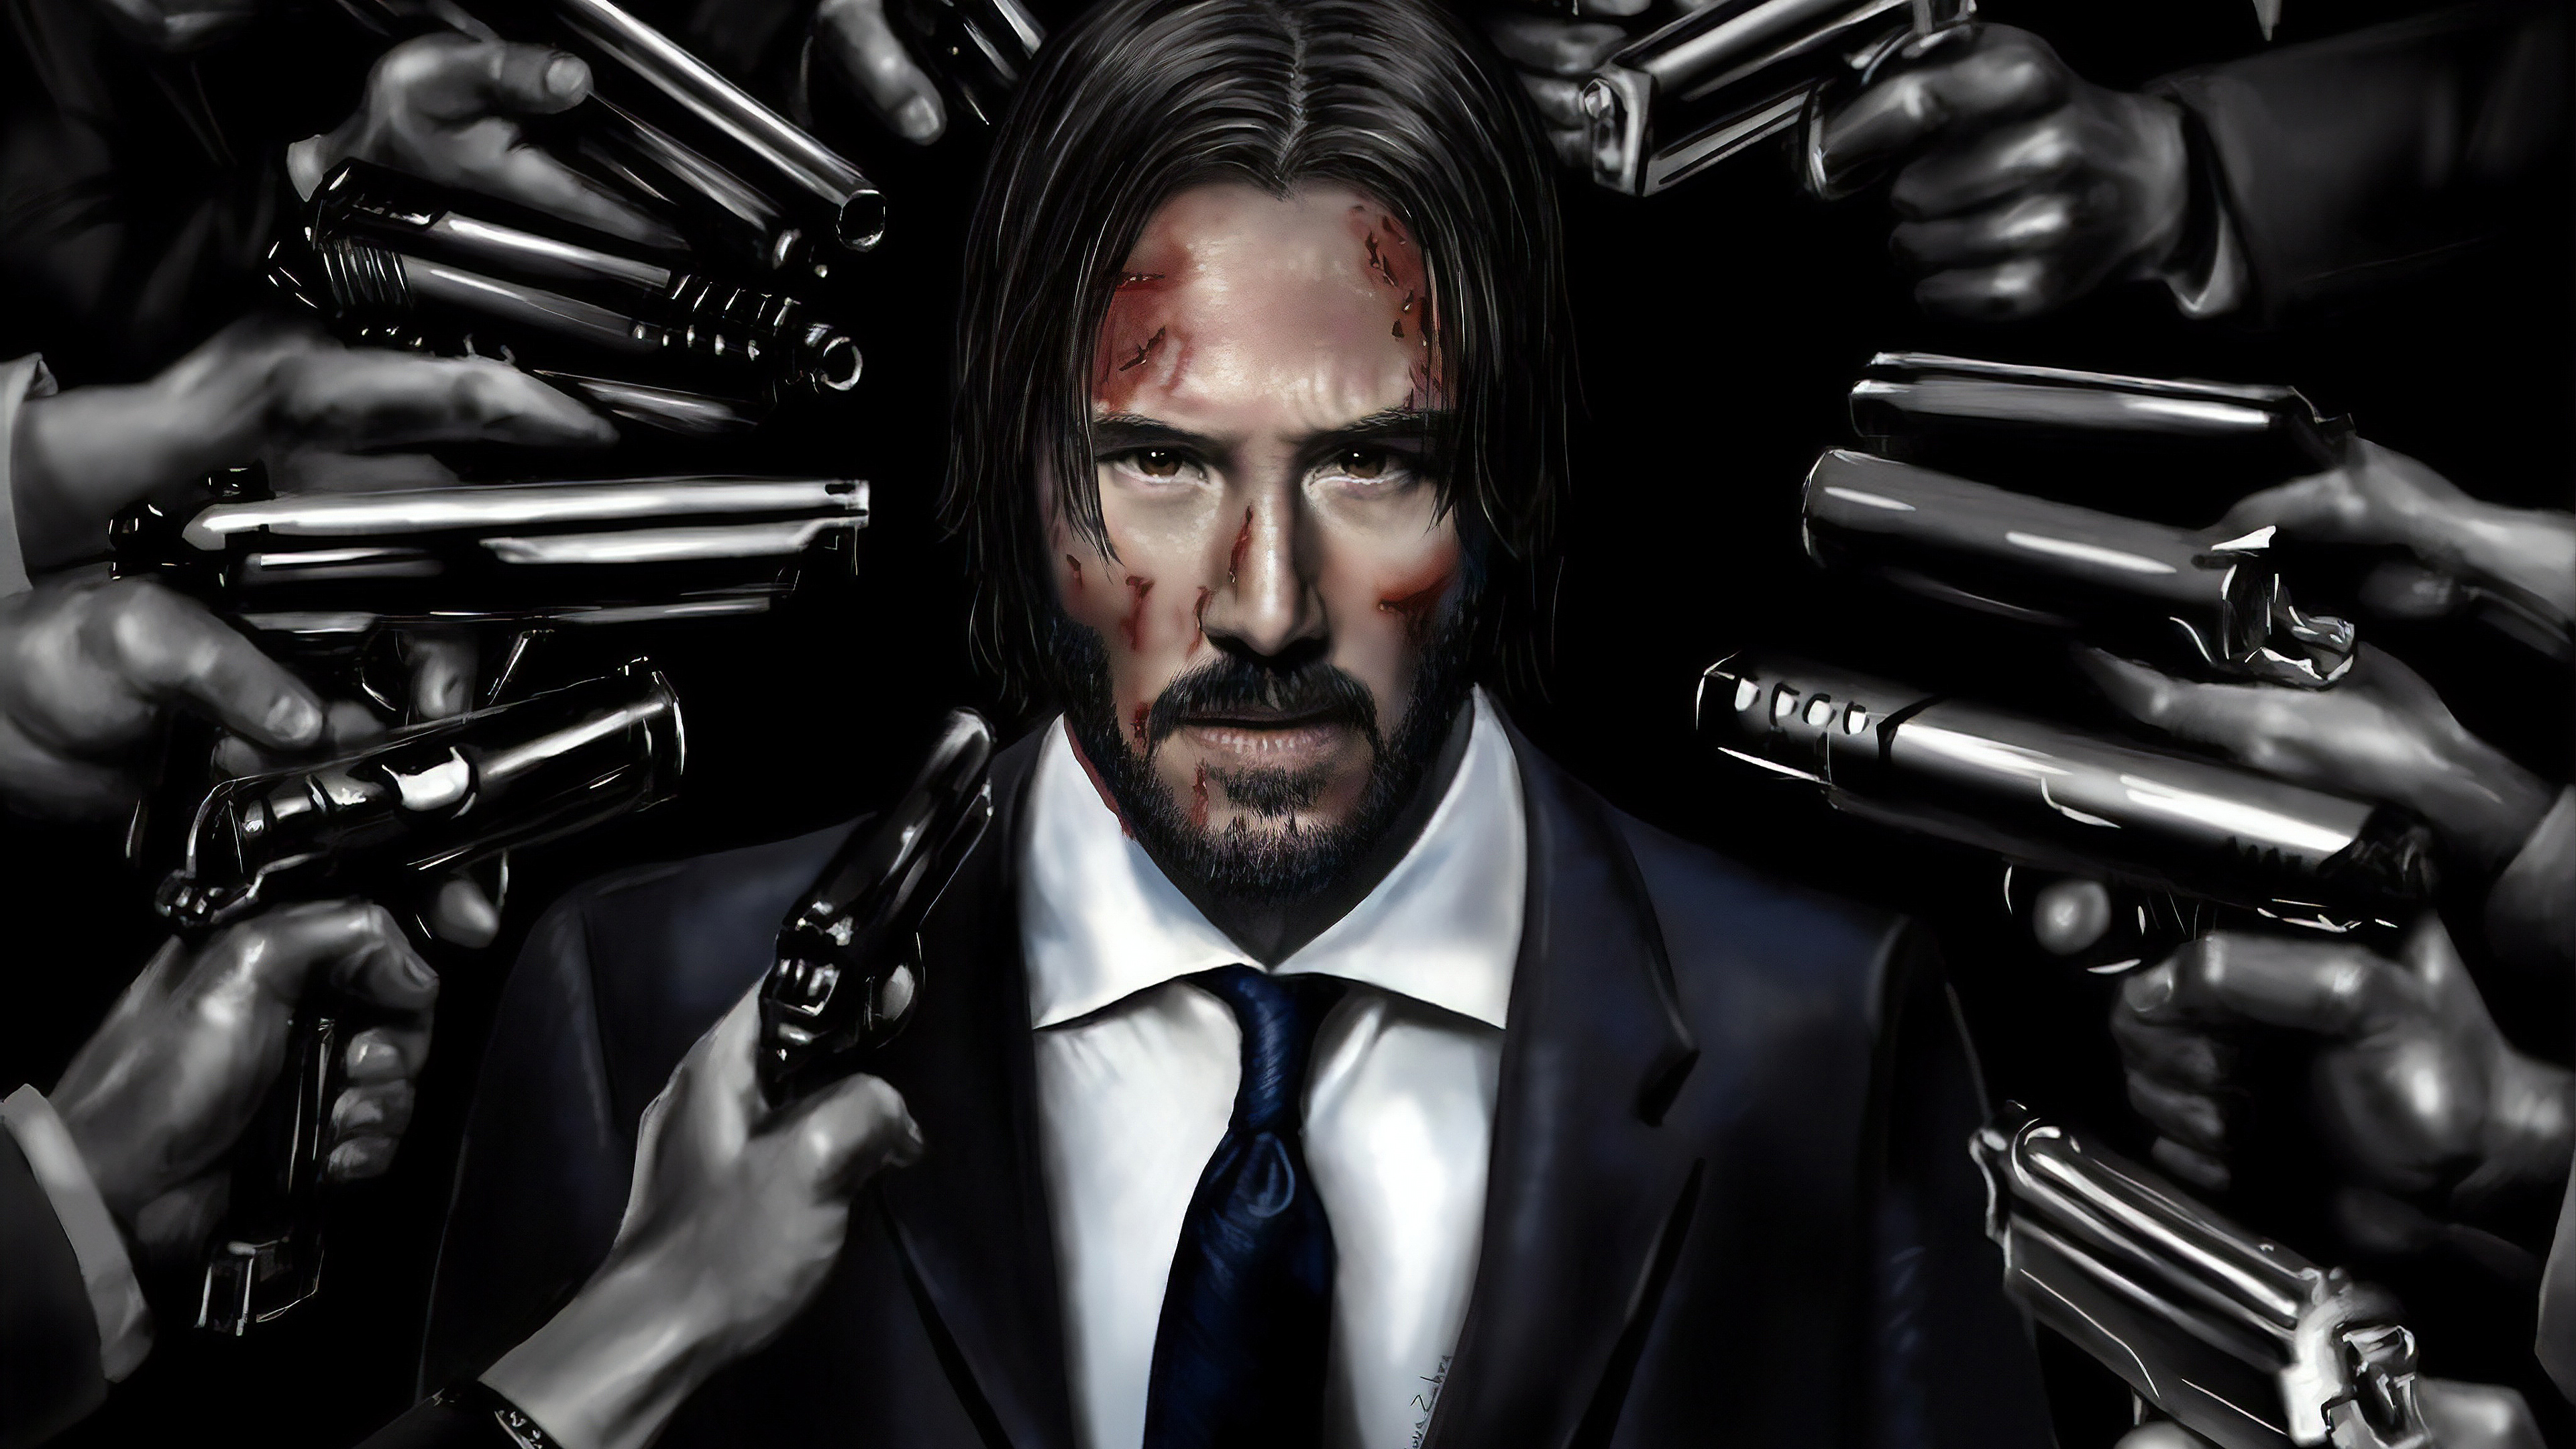 john wick art 1562107096 - John Wick Art - keanu reeves wallpapers, john wick wallpapers, hd-wallpapers, deviantart wallpapers, artwork wallpapers, 4k-wallpapers